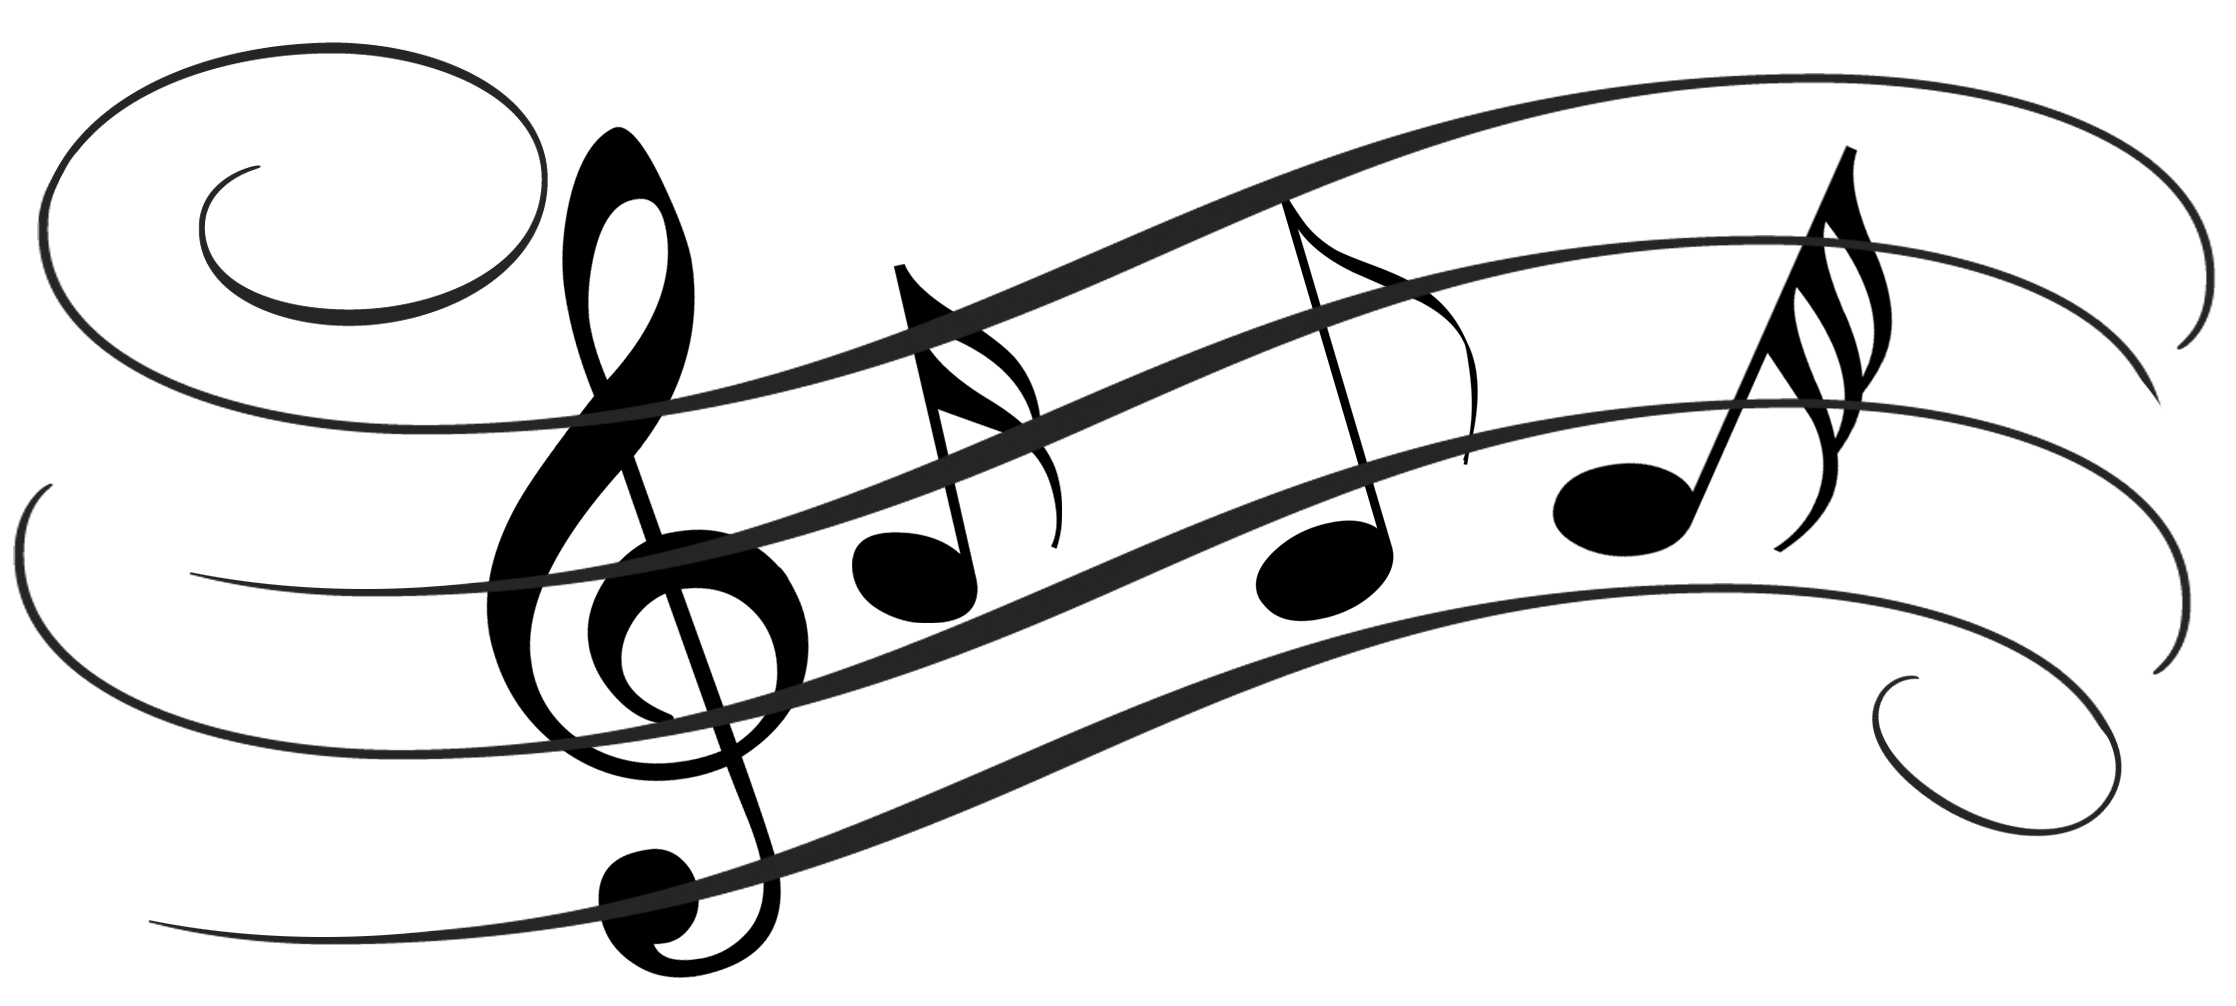 - Music Notes Clip Art Free Clipart Images - WikiClipArt